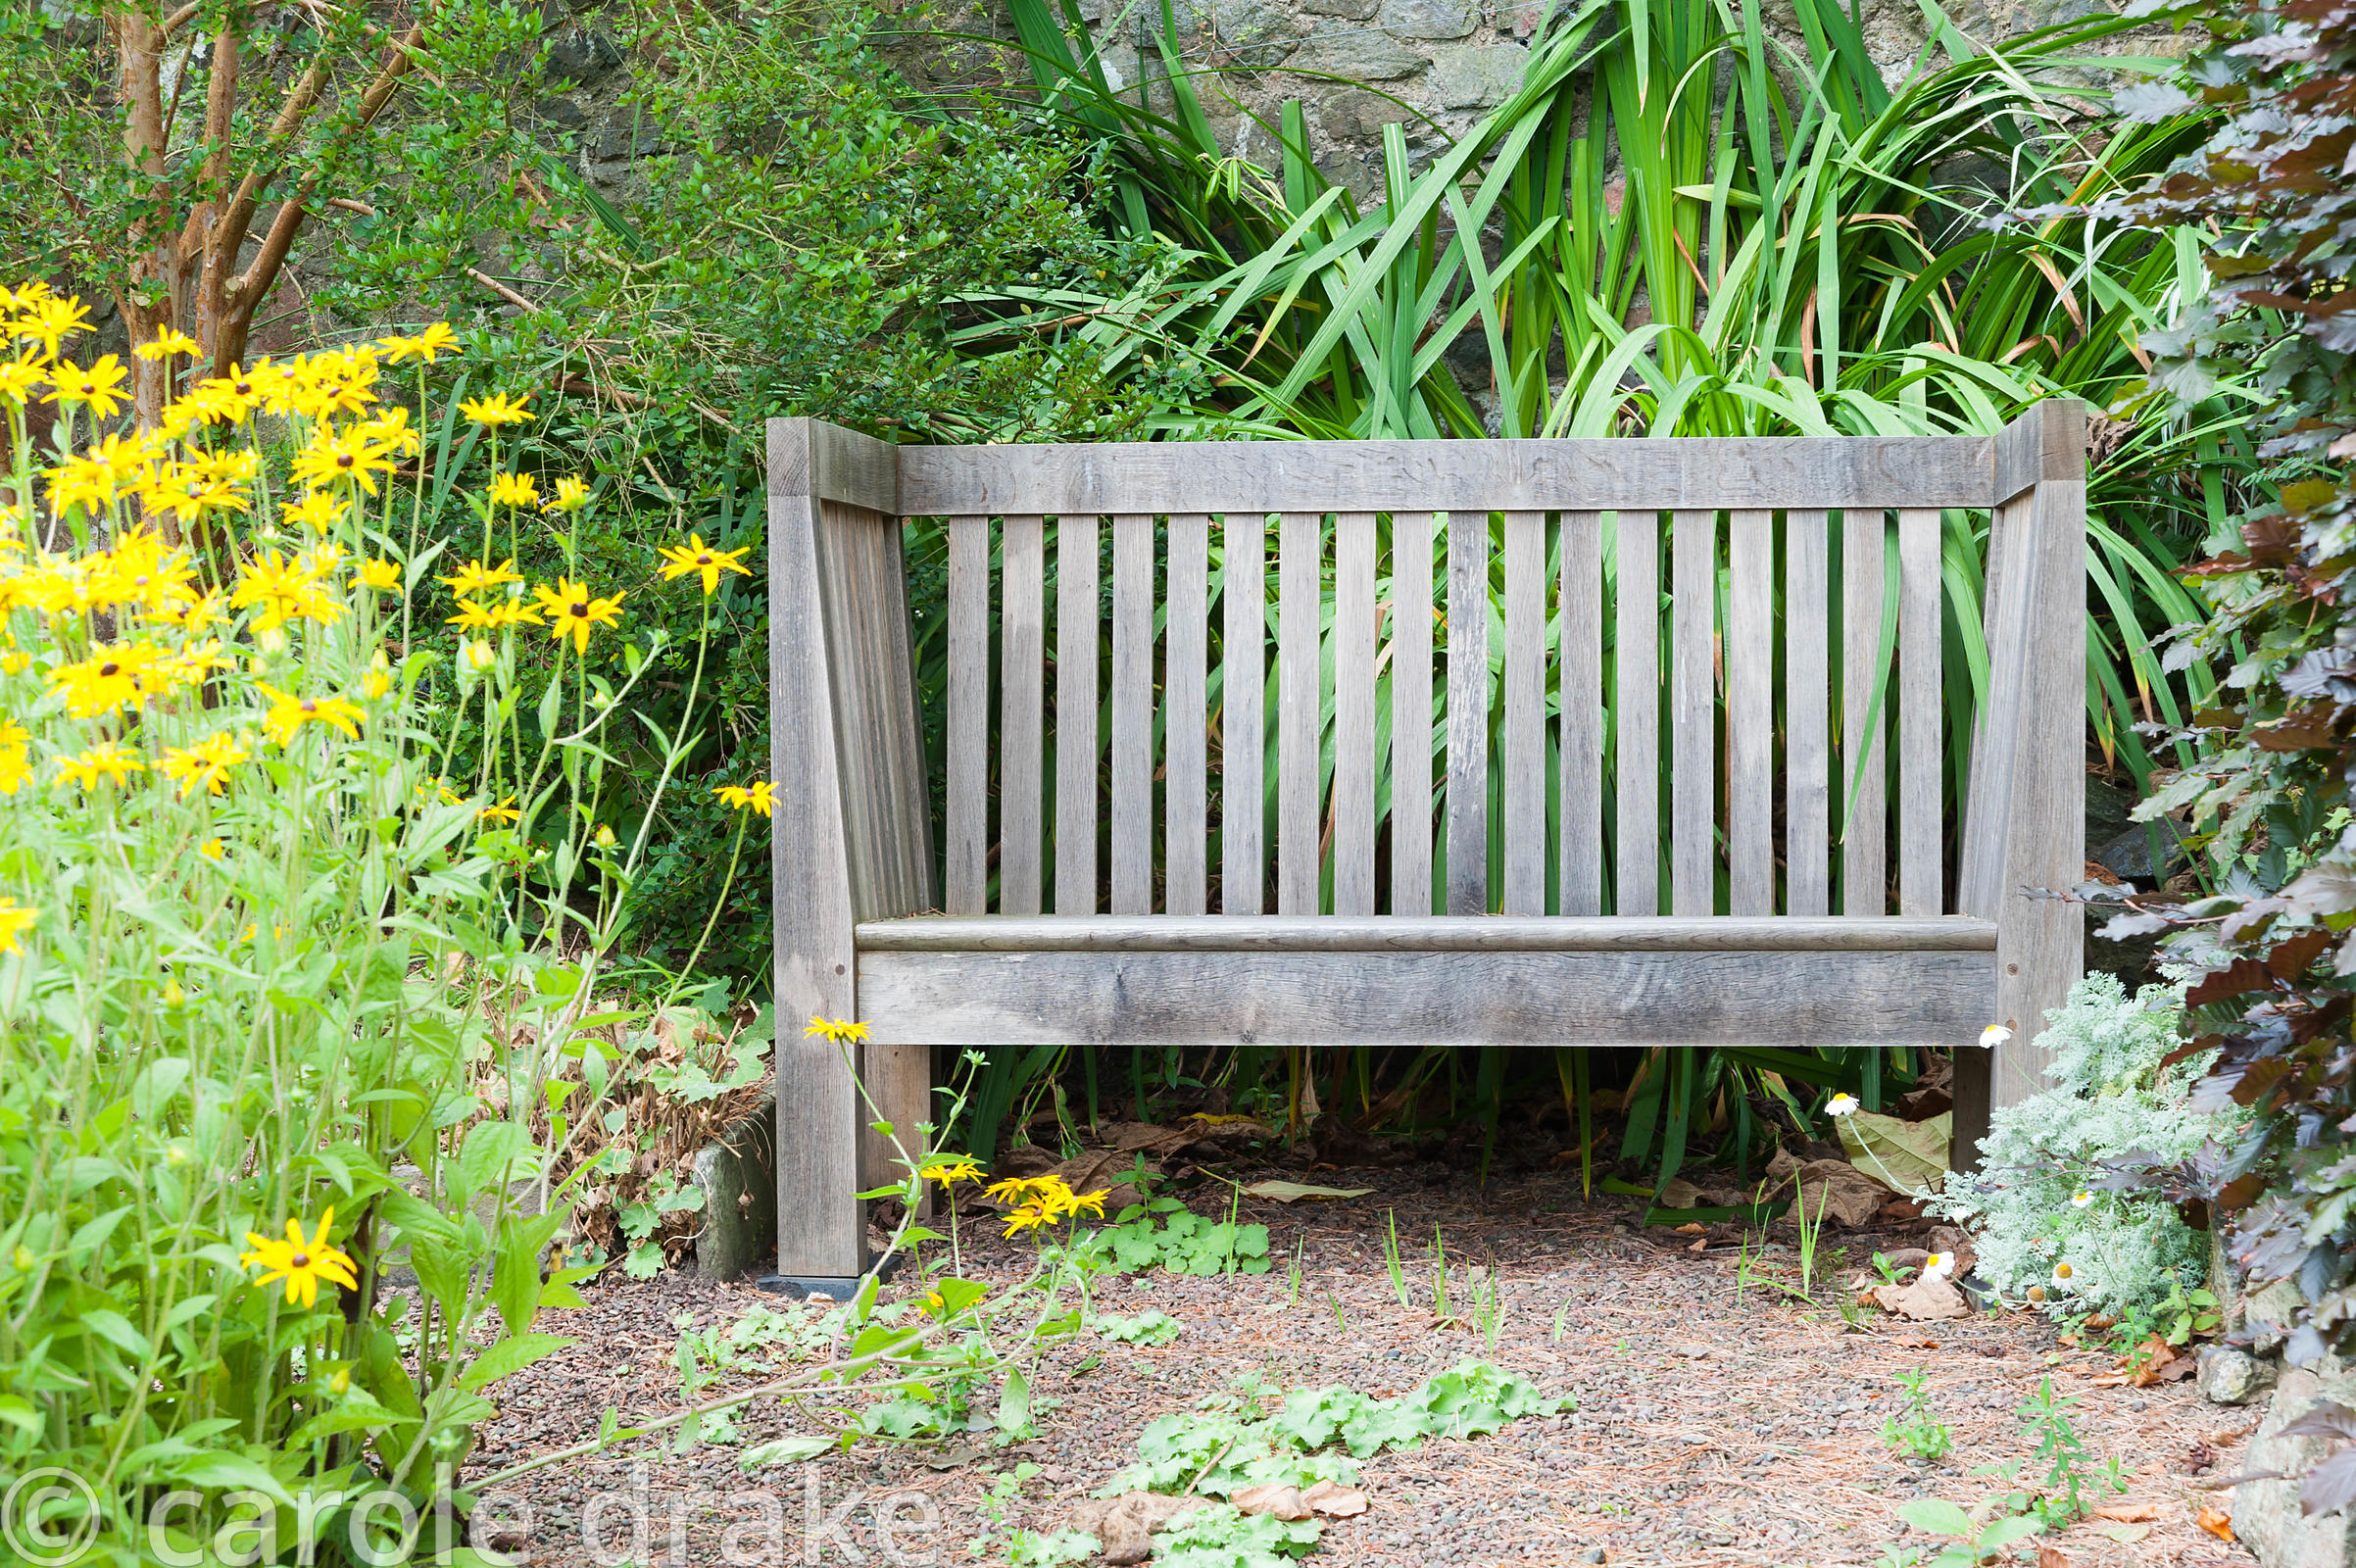 Arts and Crafts inspired oak bench designed by the owner Gillian Archer. Perrycroft, Upper Colwall, Herefordshire, UK